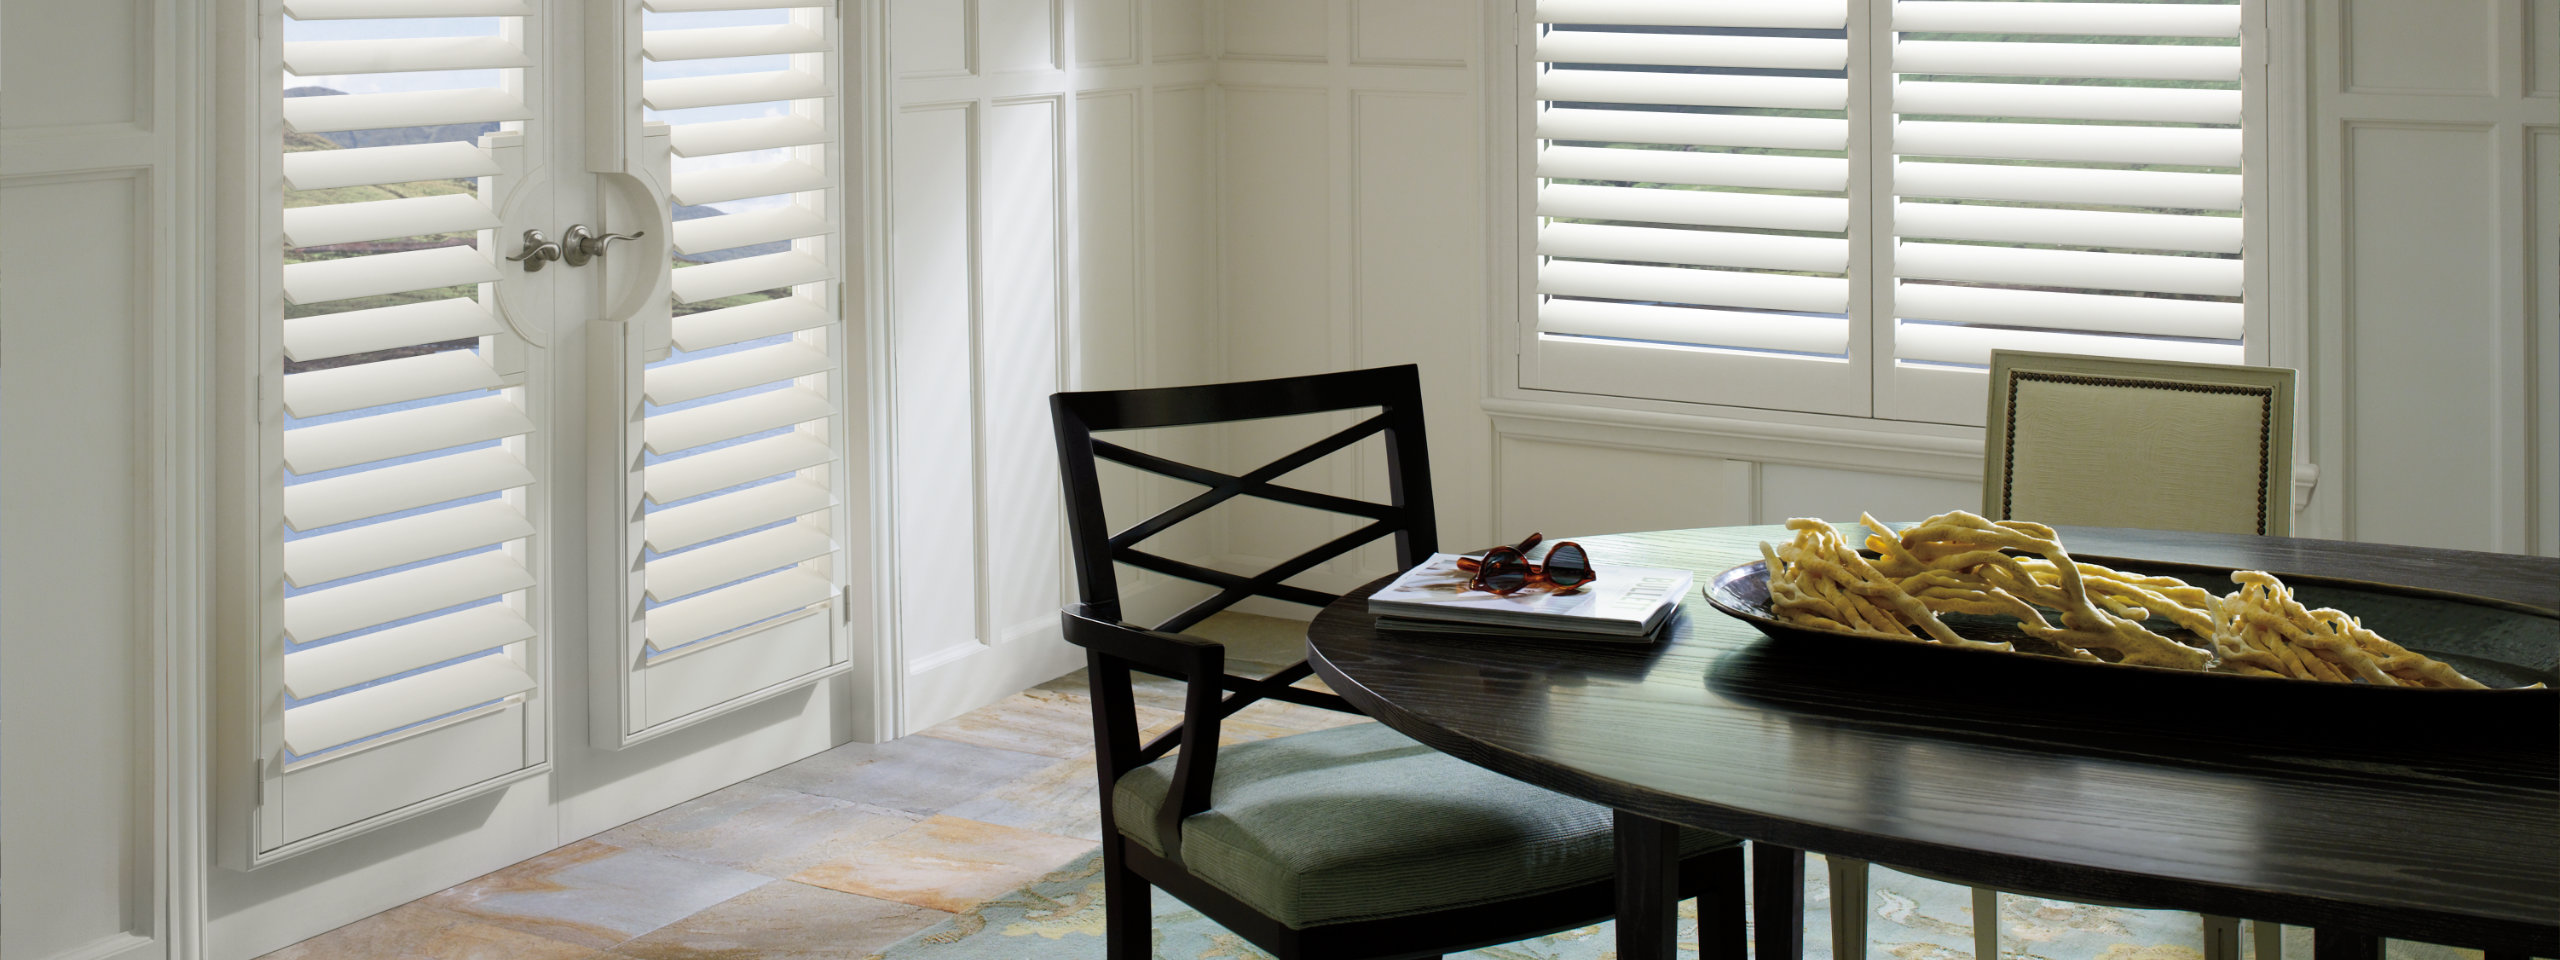 Plantation Shutters in Dining Room